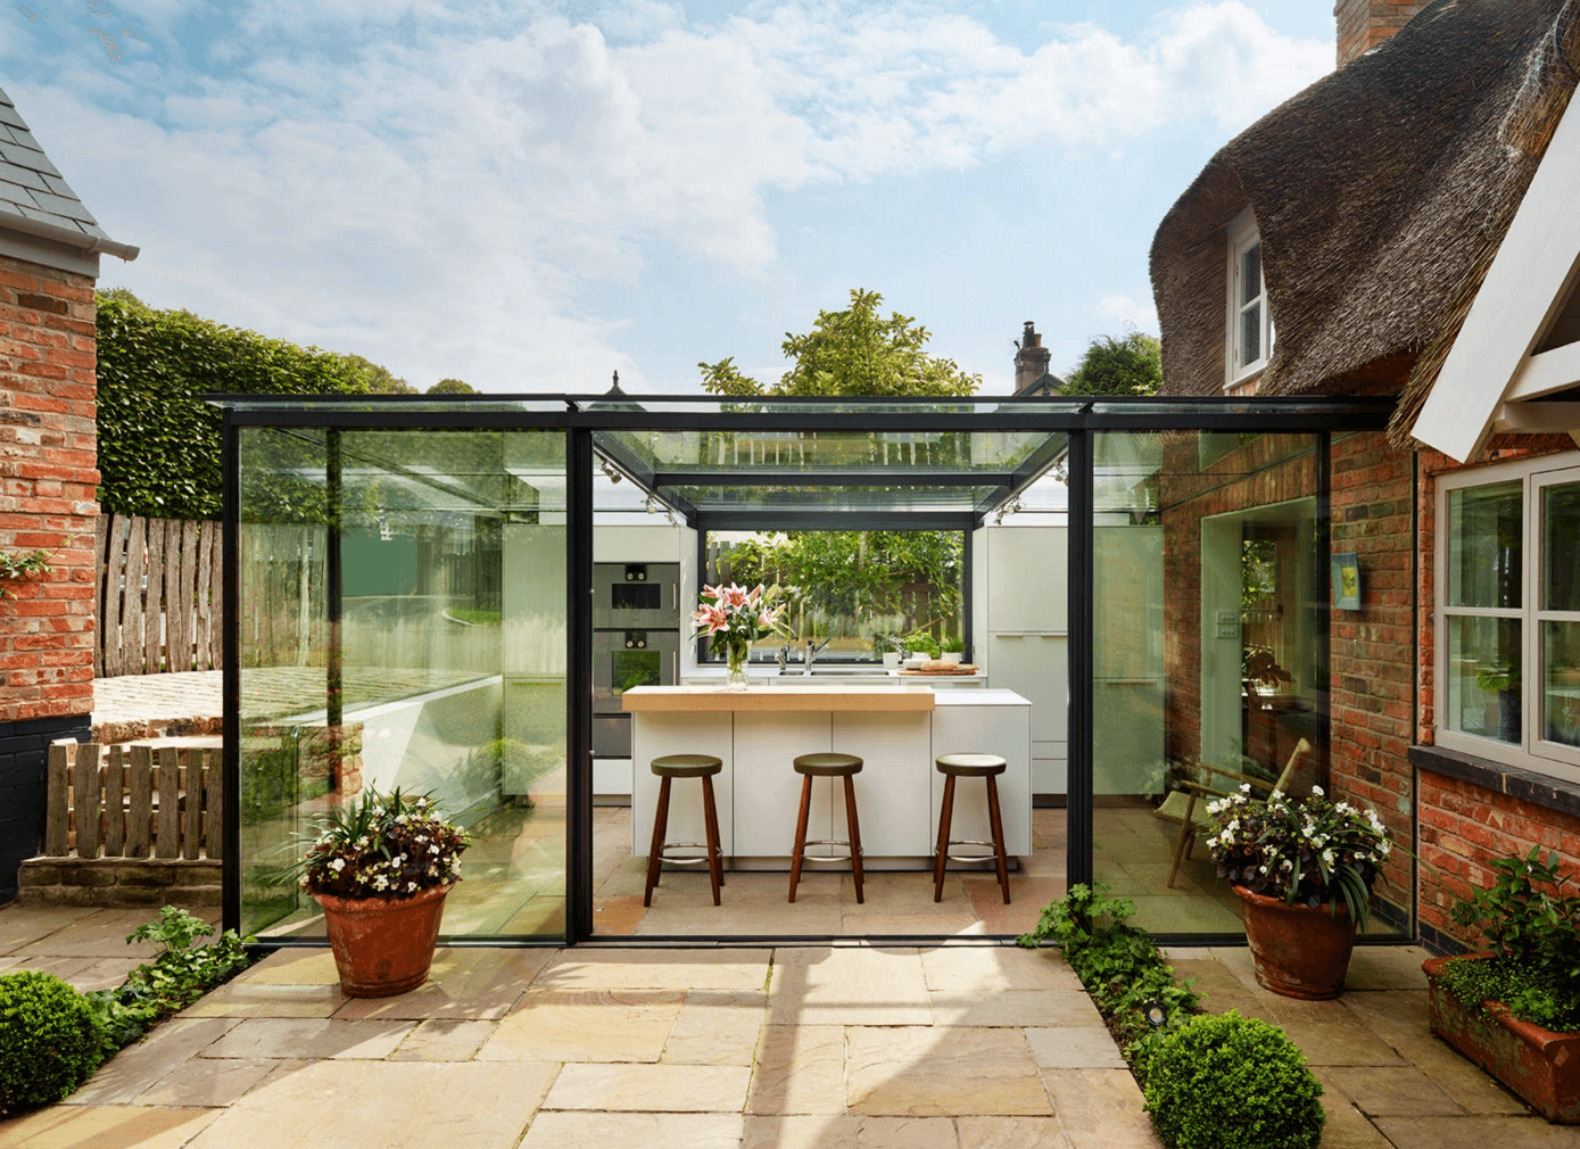 18th Century English Cottage Renovated With Breathtaking Glass Enclosed  Kitchen Extension Part 77